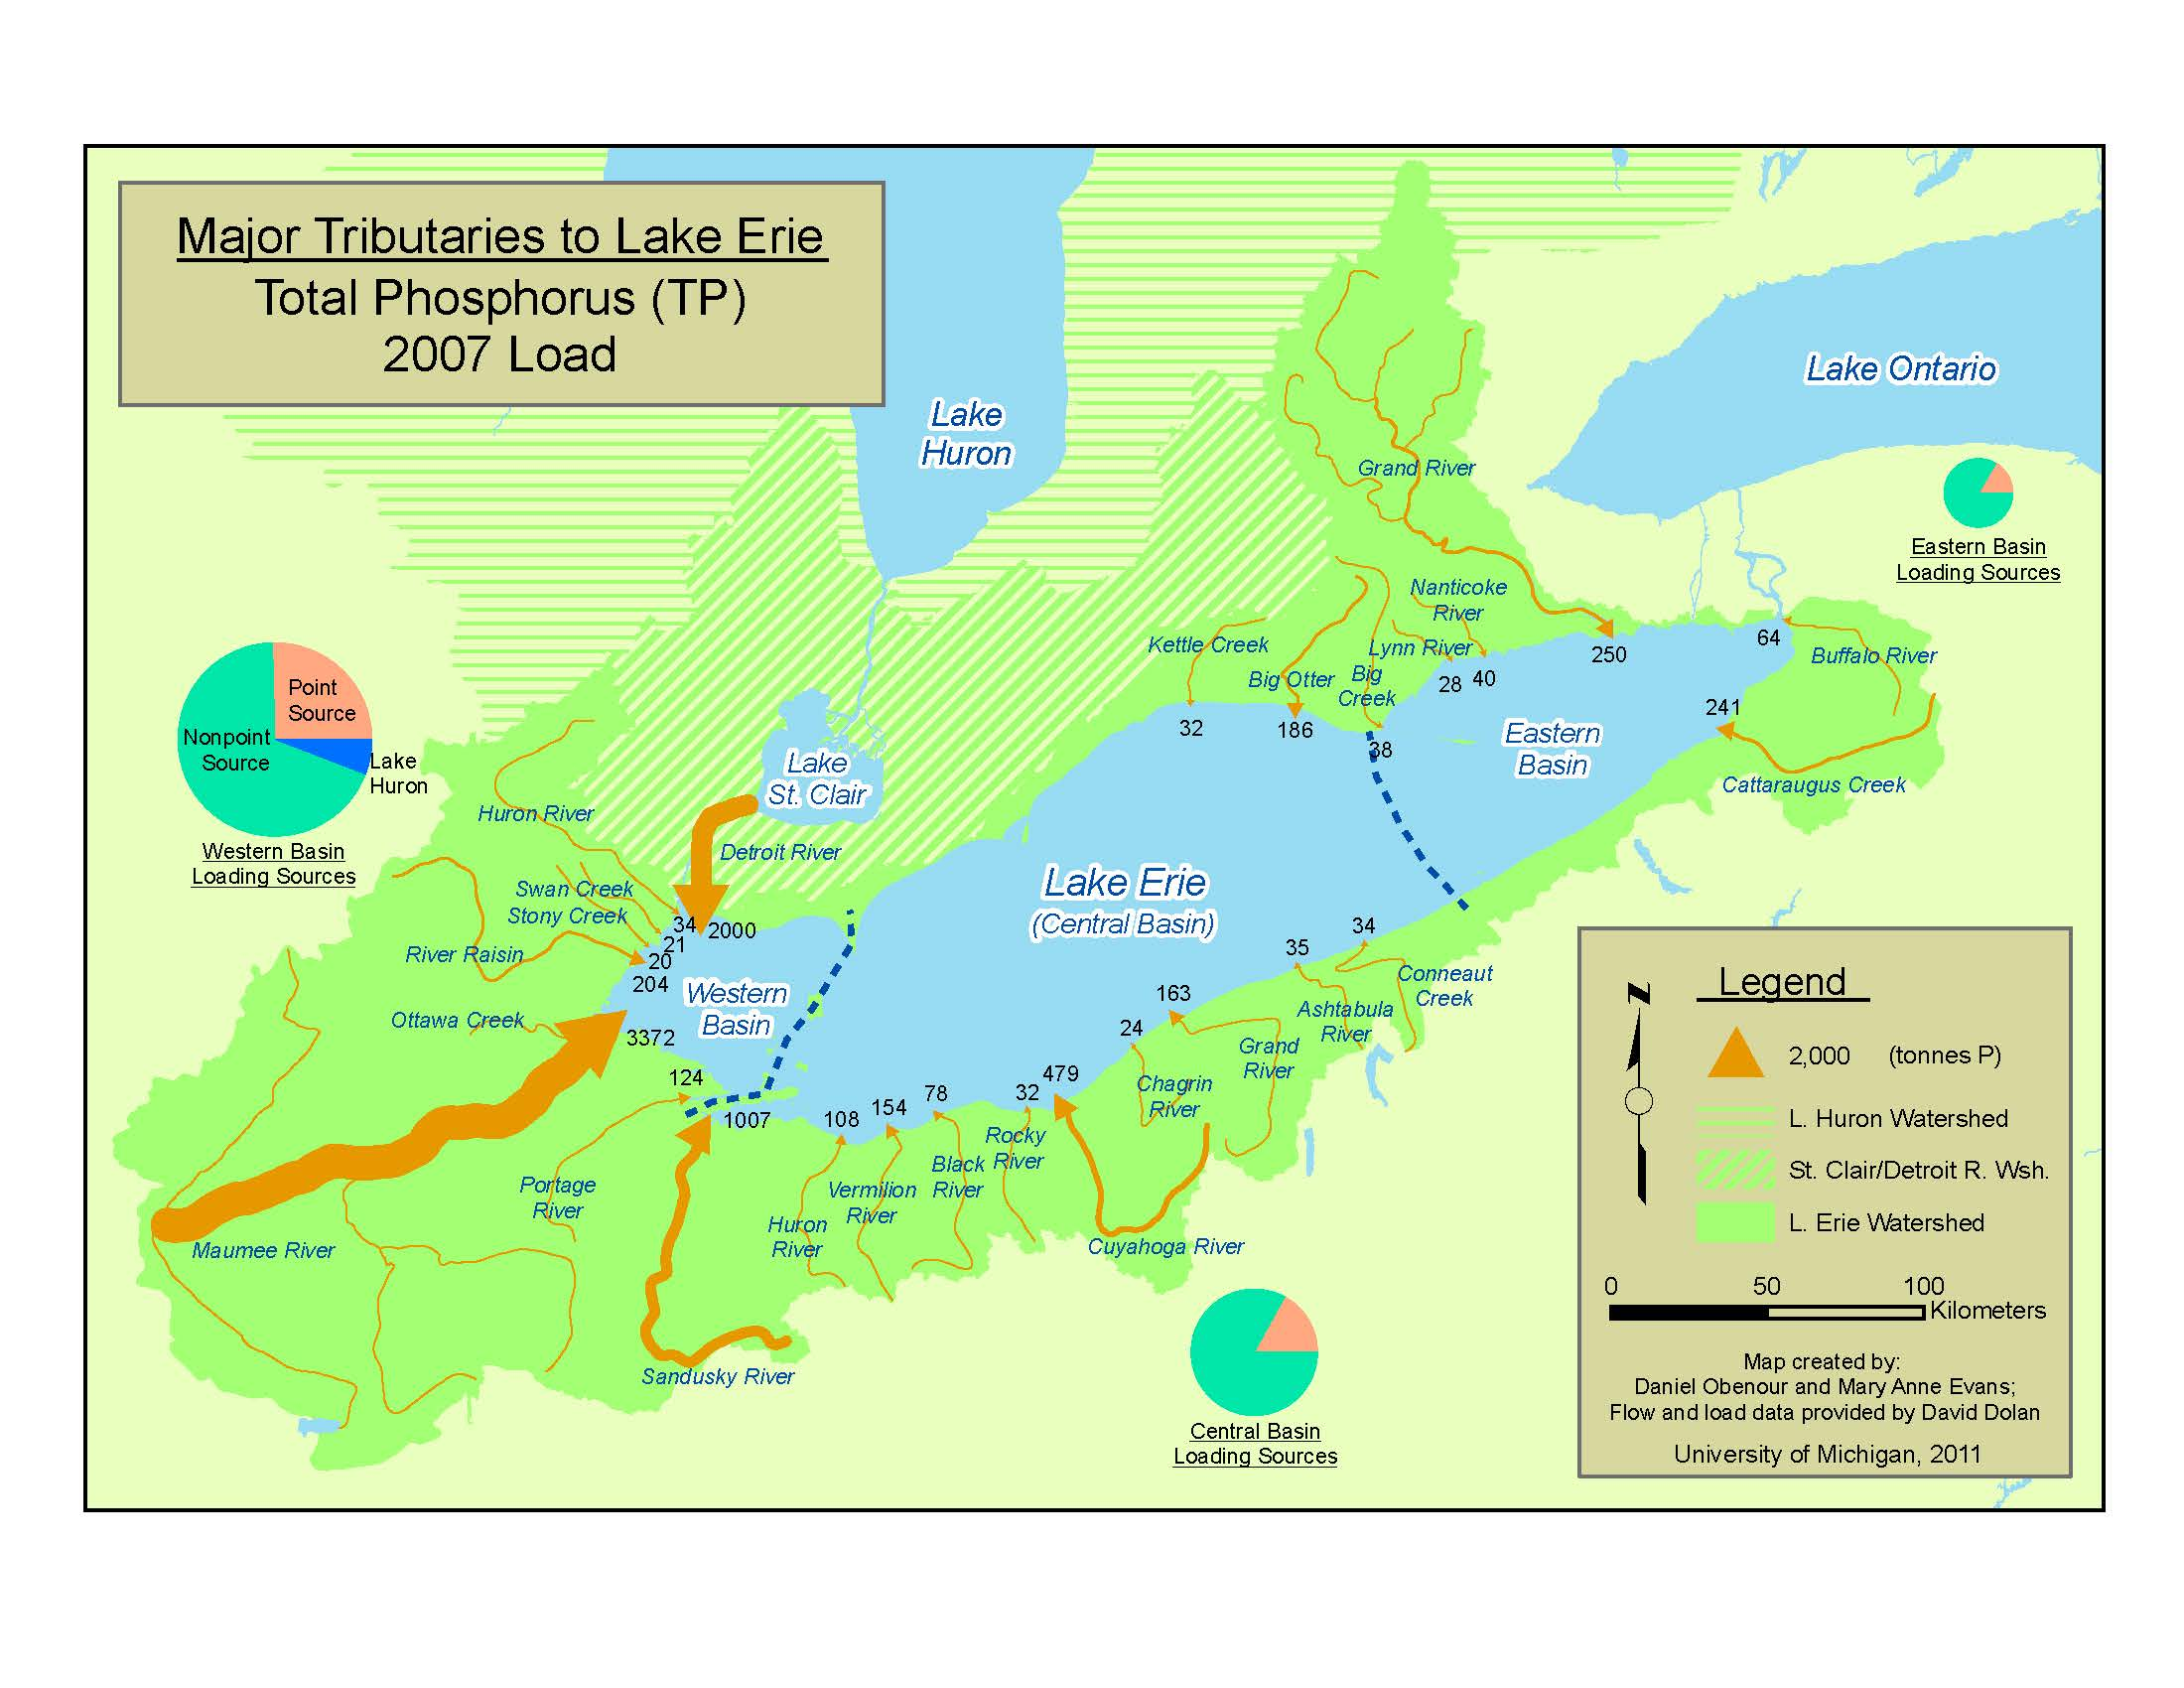 Map showing major tributaries of Lake Erie. Image credit: Daniel Obenour and Mary Anne Evans